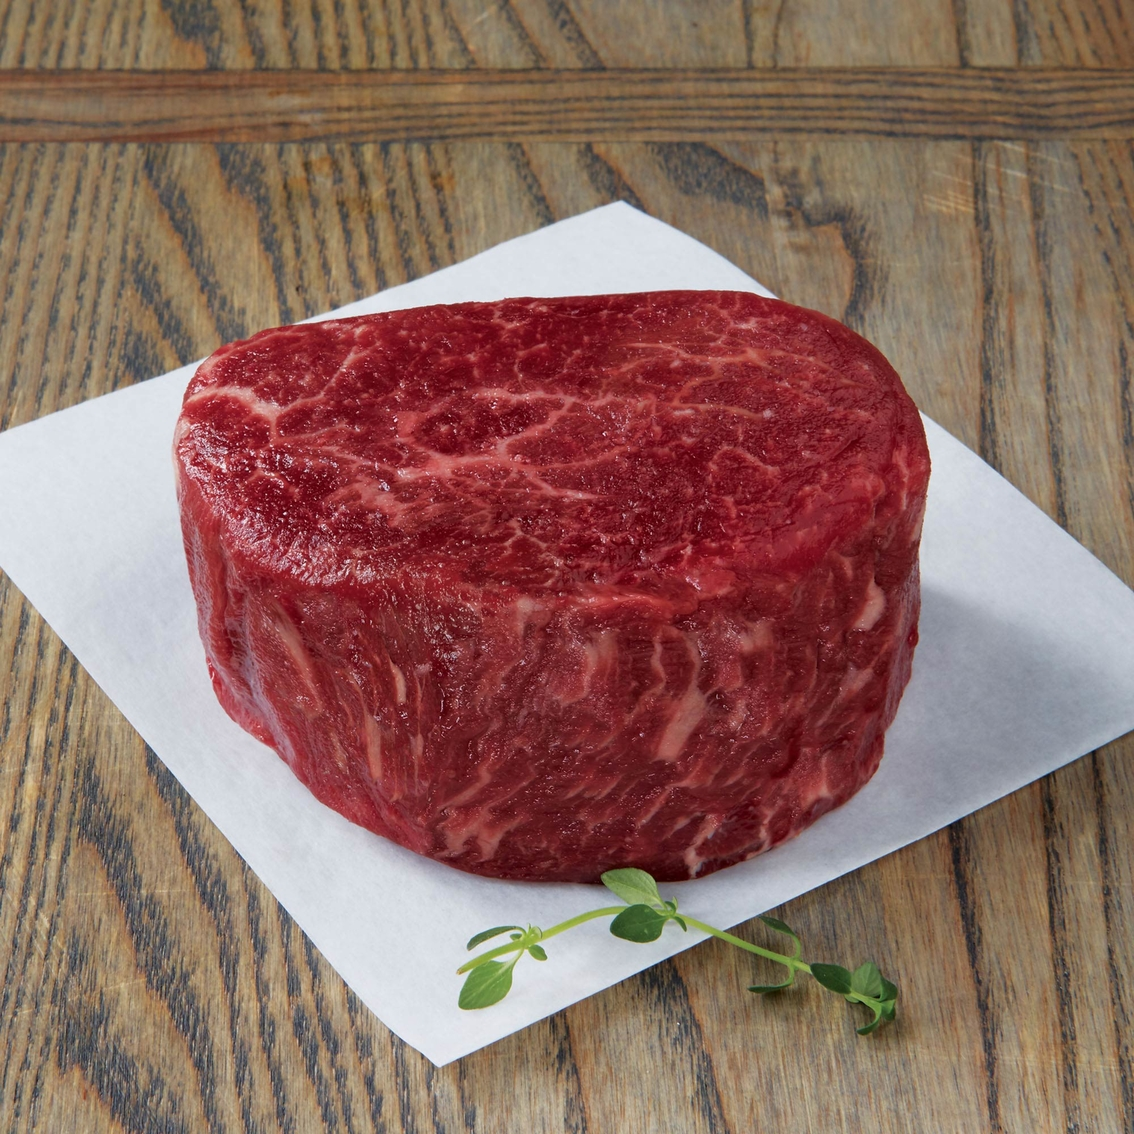 Kansas City Steak Company Qty 4 6 Oz Usda Prime Filet Mignon Meat Seafood Food Gifts Shop The Exchange